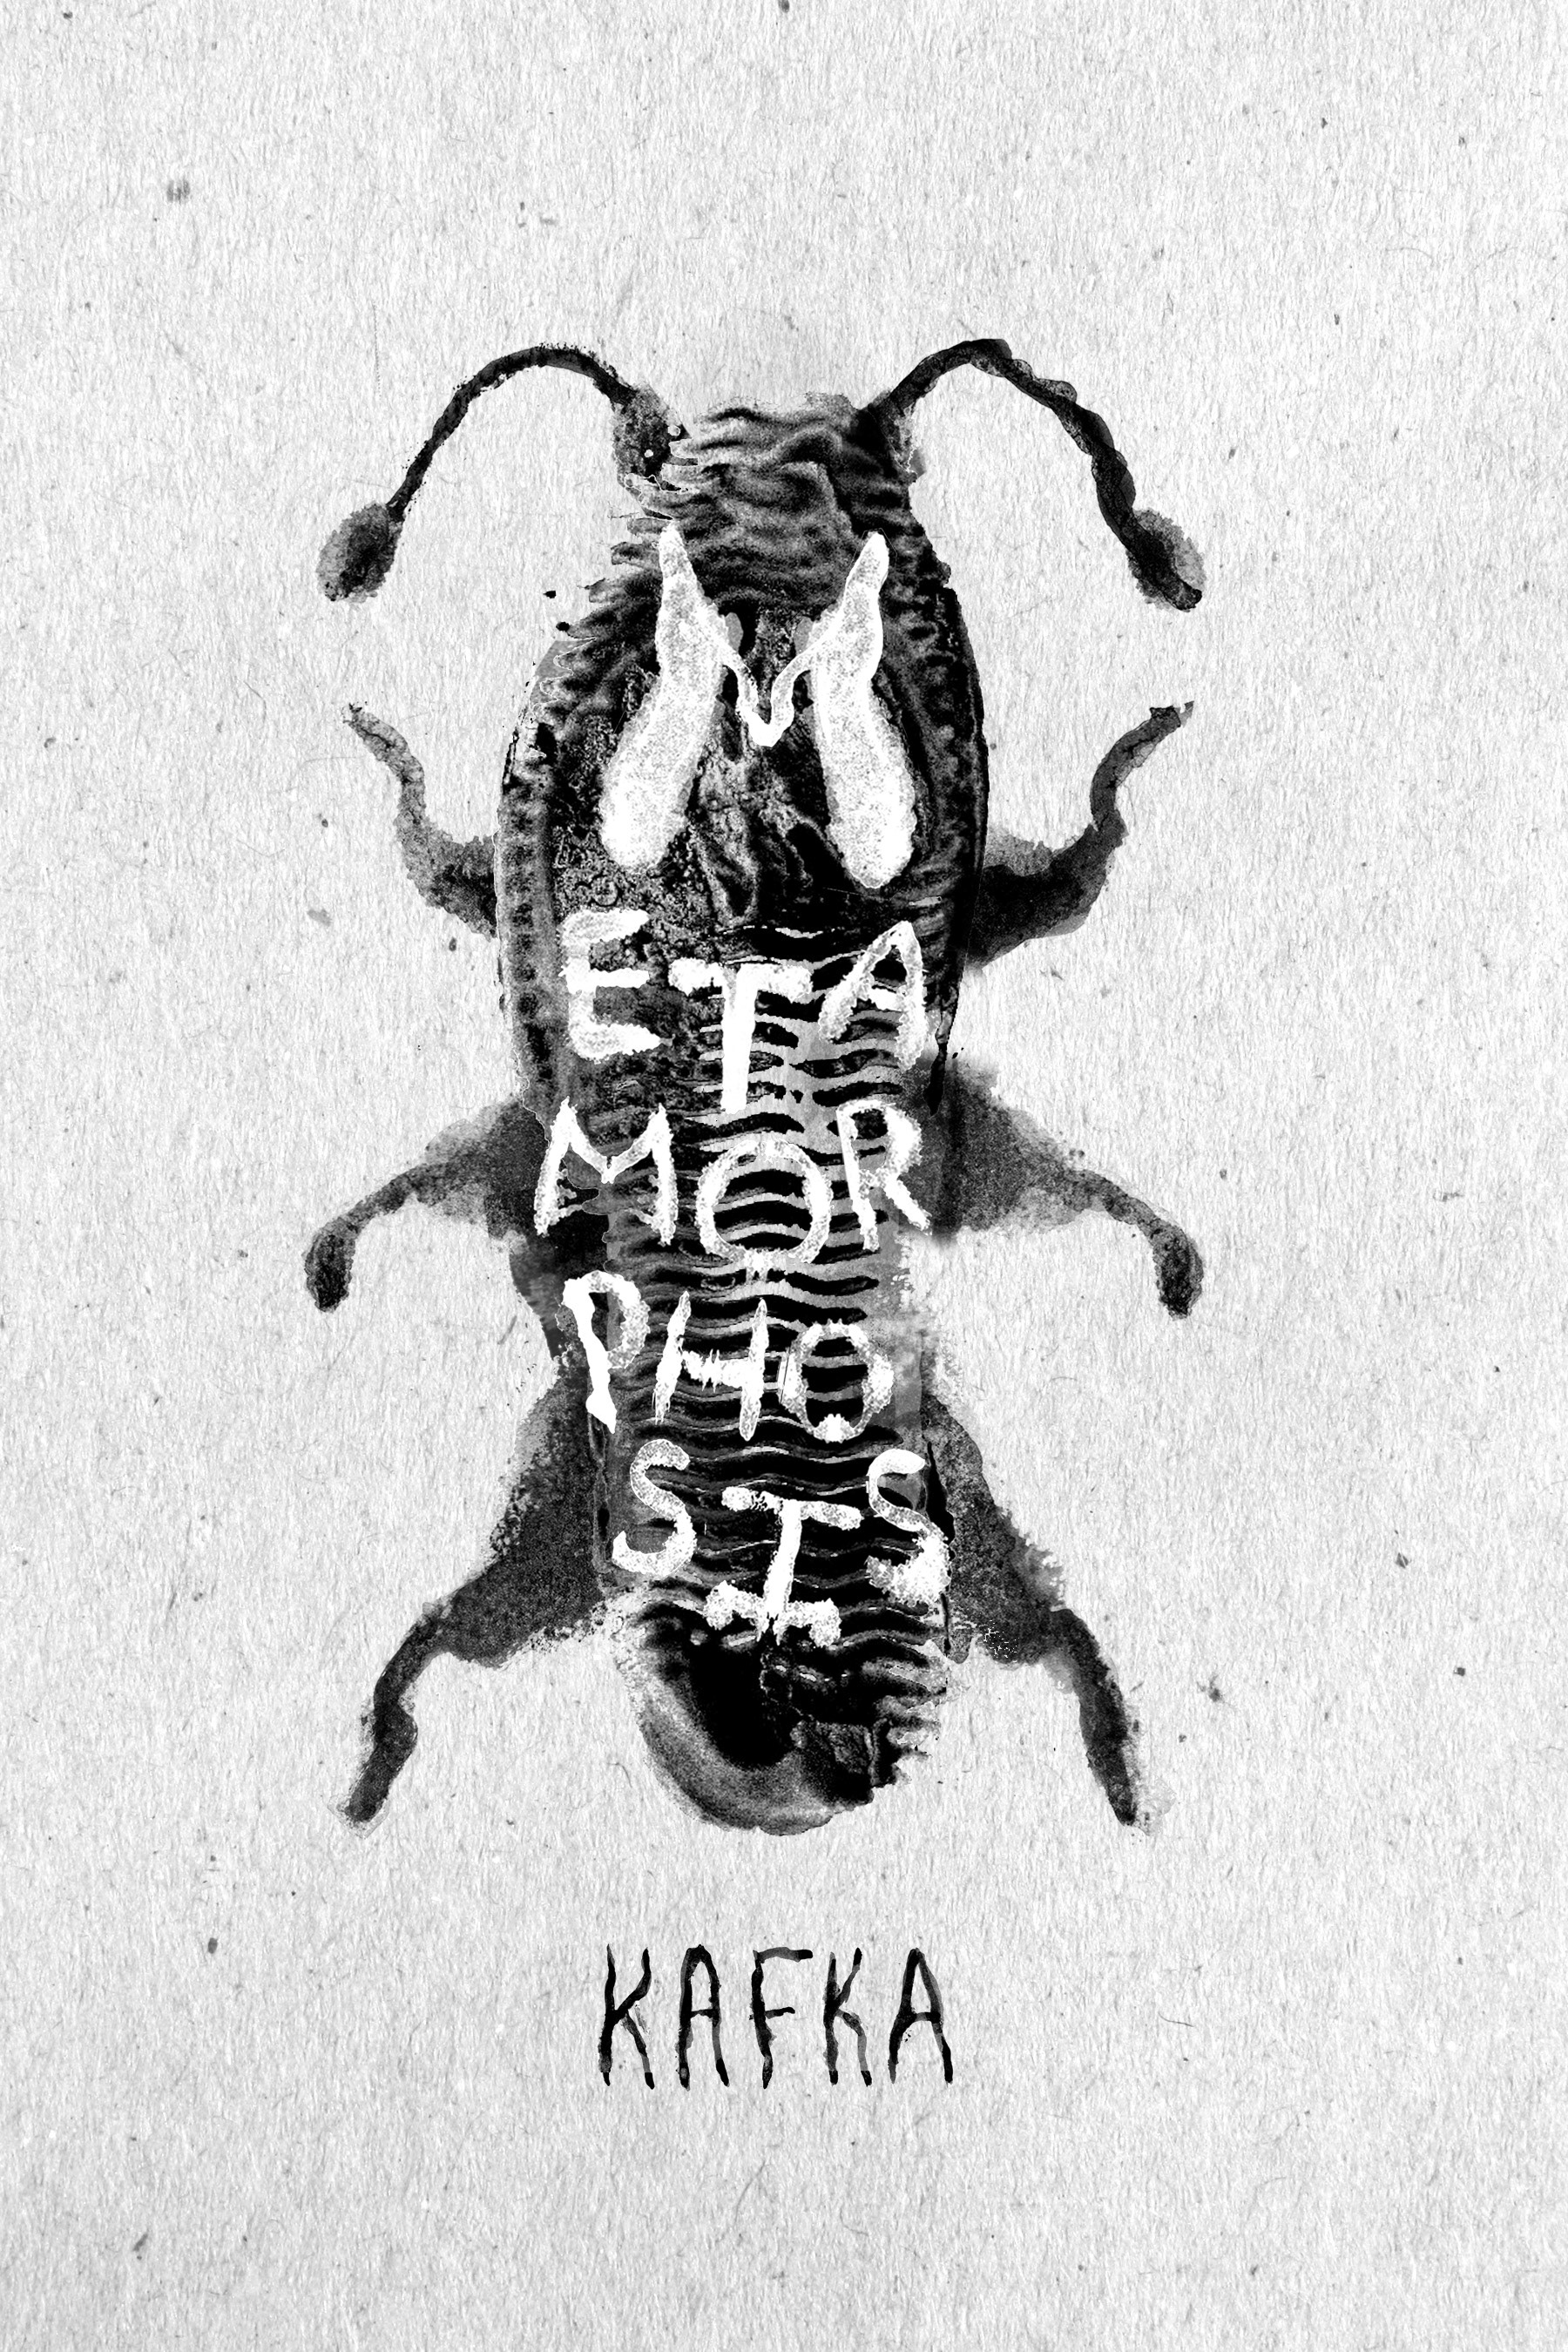 """themes in kafkas the metamorphosis The metamorphosis theme themes in frank kafka's """"metamorphosis"""" franz kafka's """"metamorphosis"""" is a story about a man who awakes one morning to find himself transformed into a giant bug."""